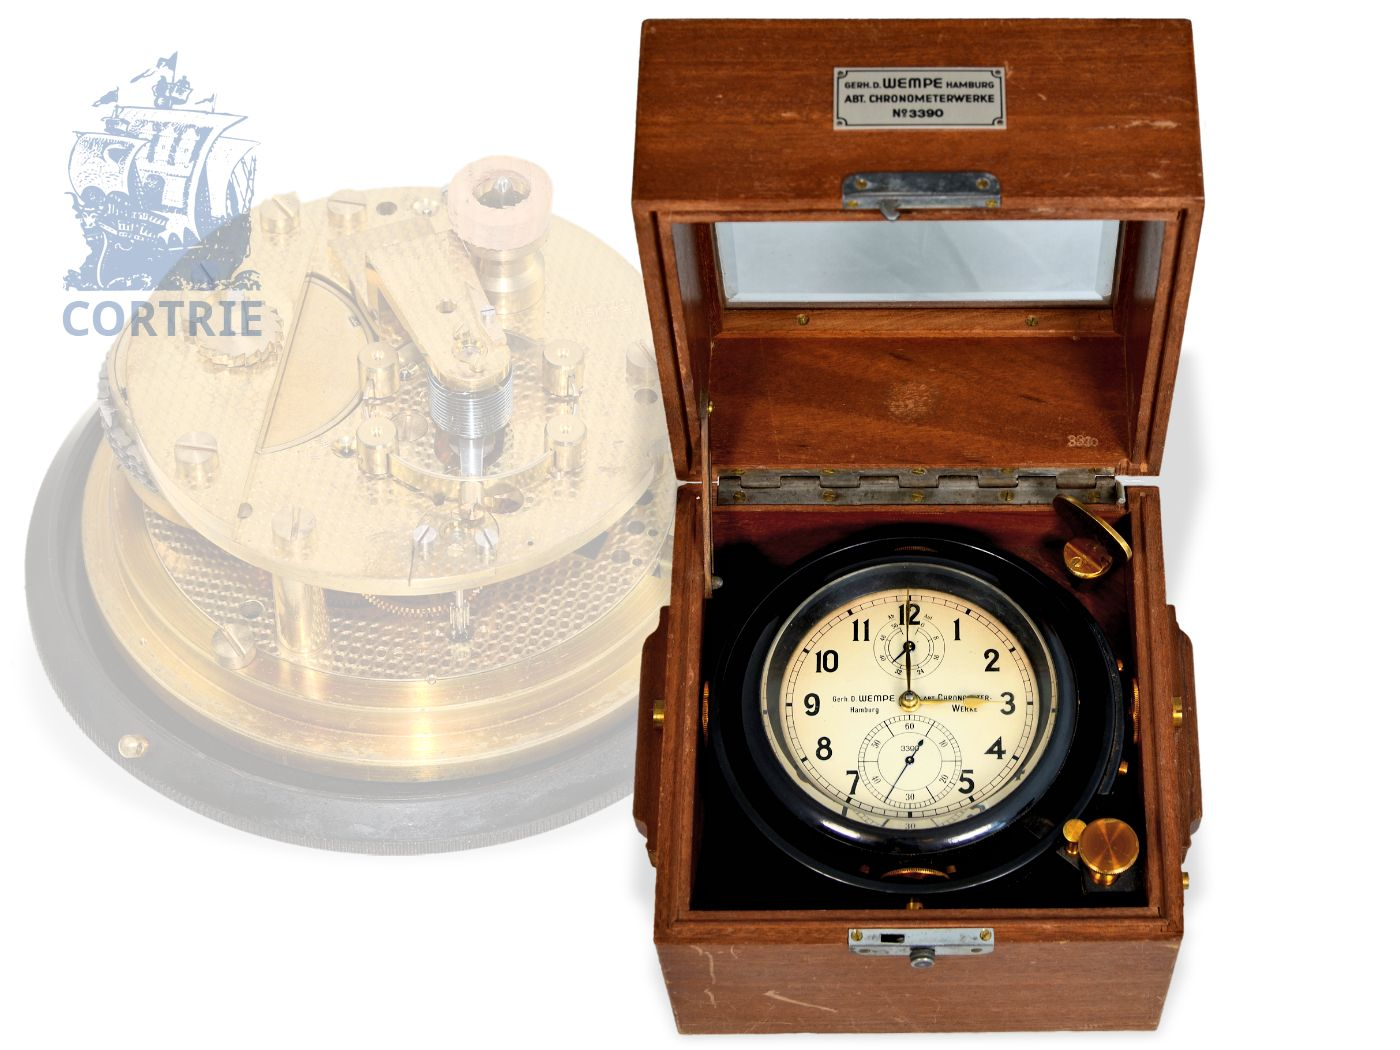 Box chronometer/ship's chronometer: rare Wempe marine chronometer, Ankerchronometer with Glashütte balance, Glashütte/Hamburg, from the 40s-